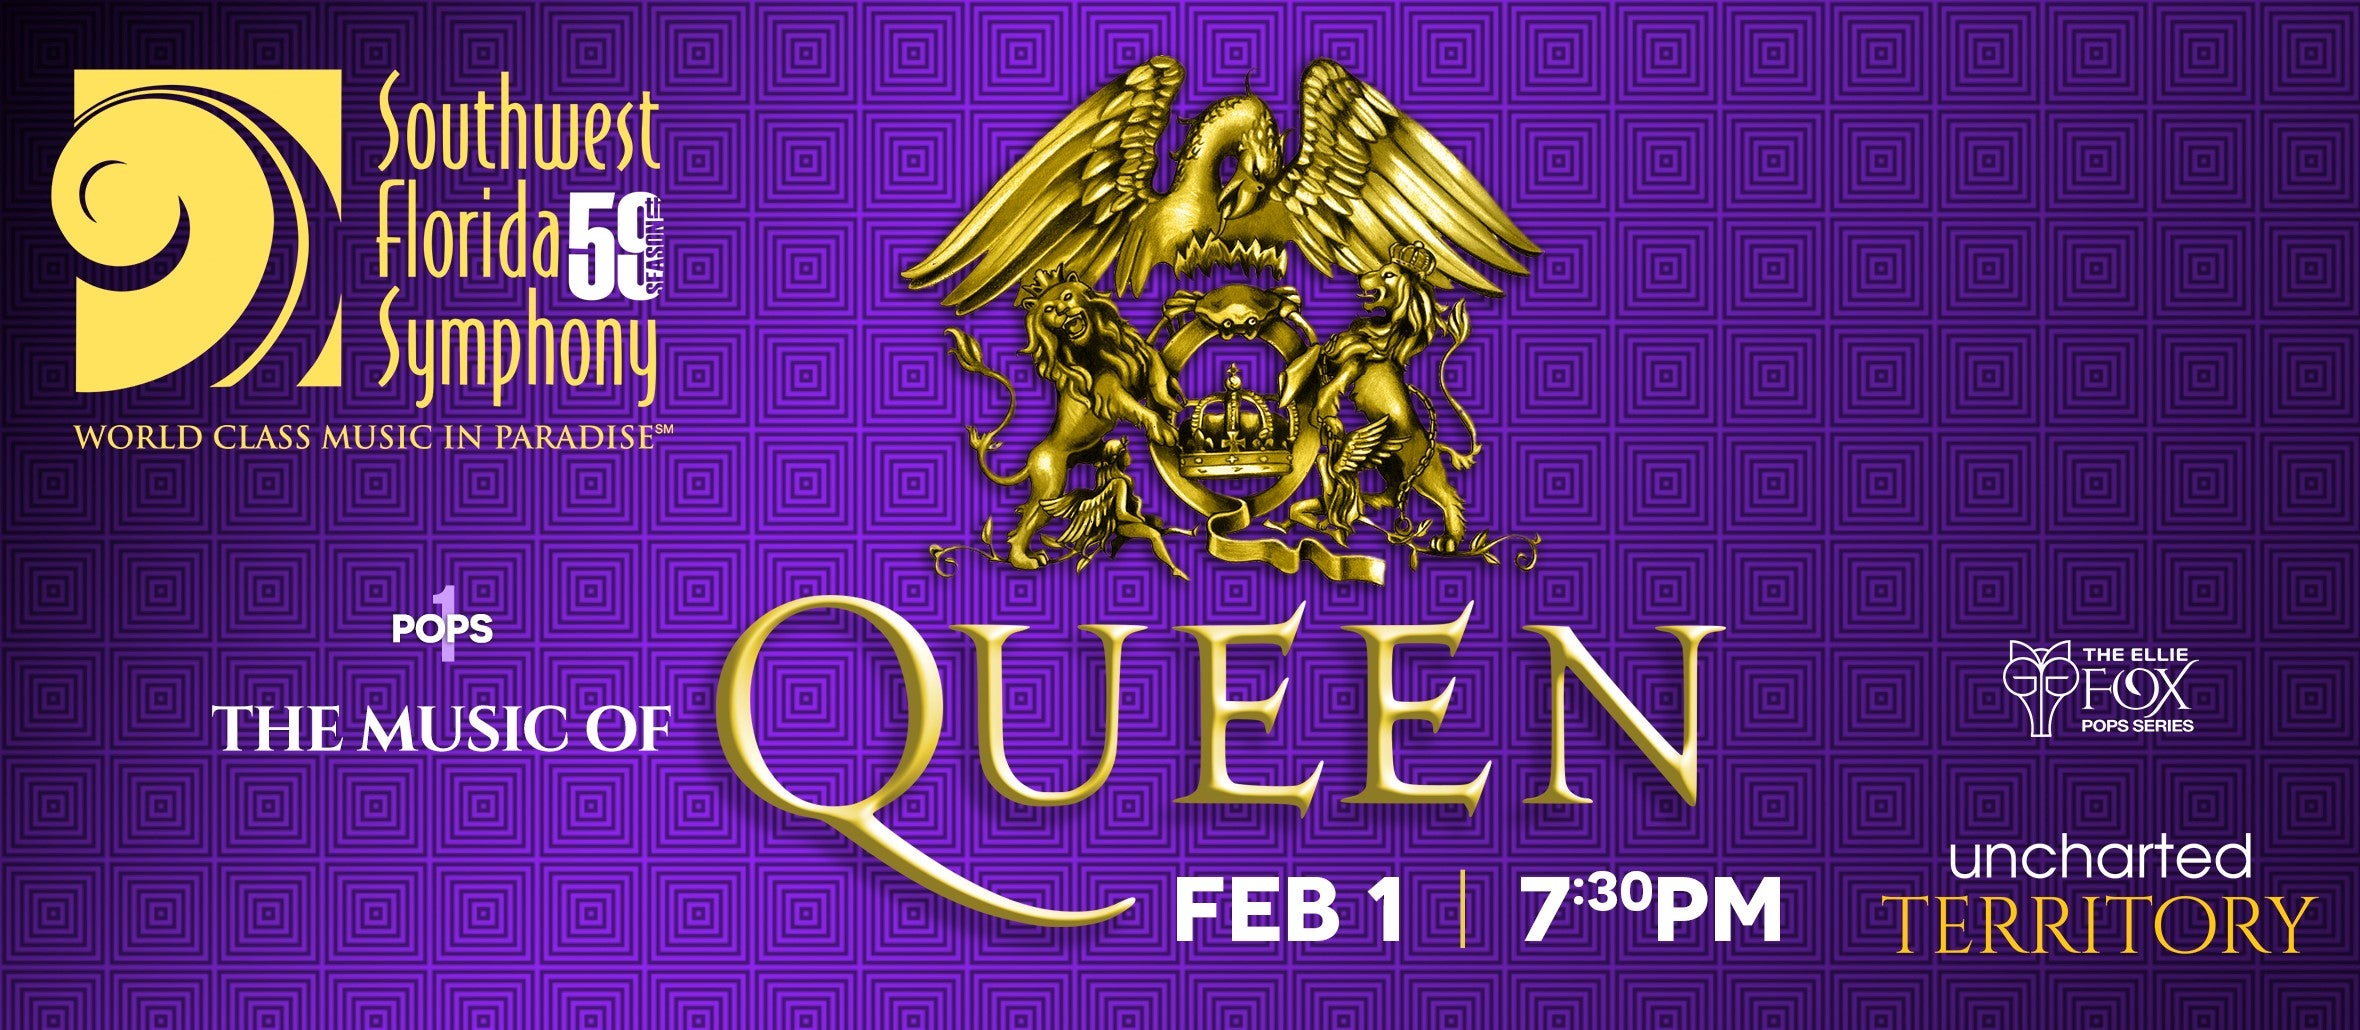 Southwest Florida Symphony: POPS1 The Music of Queen